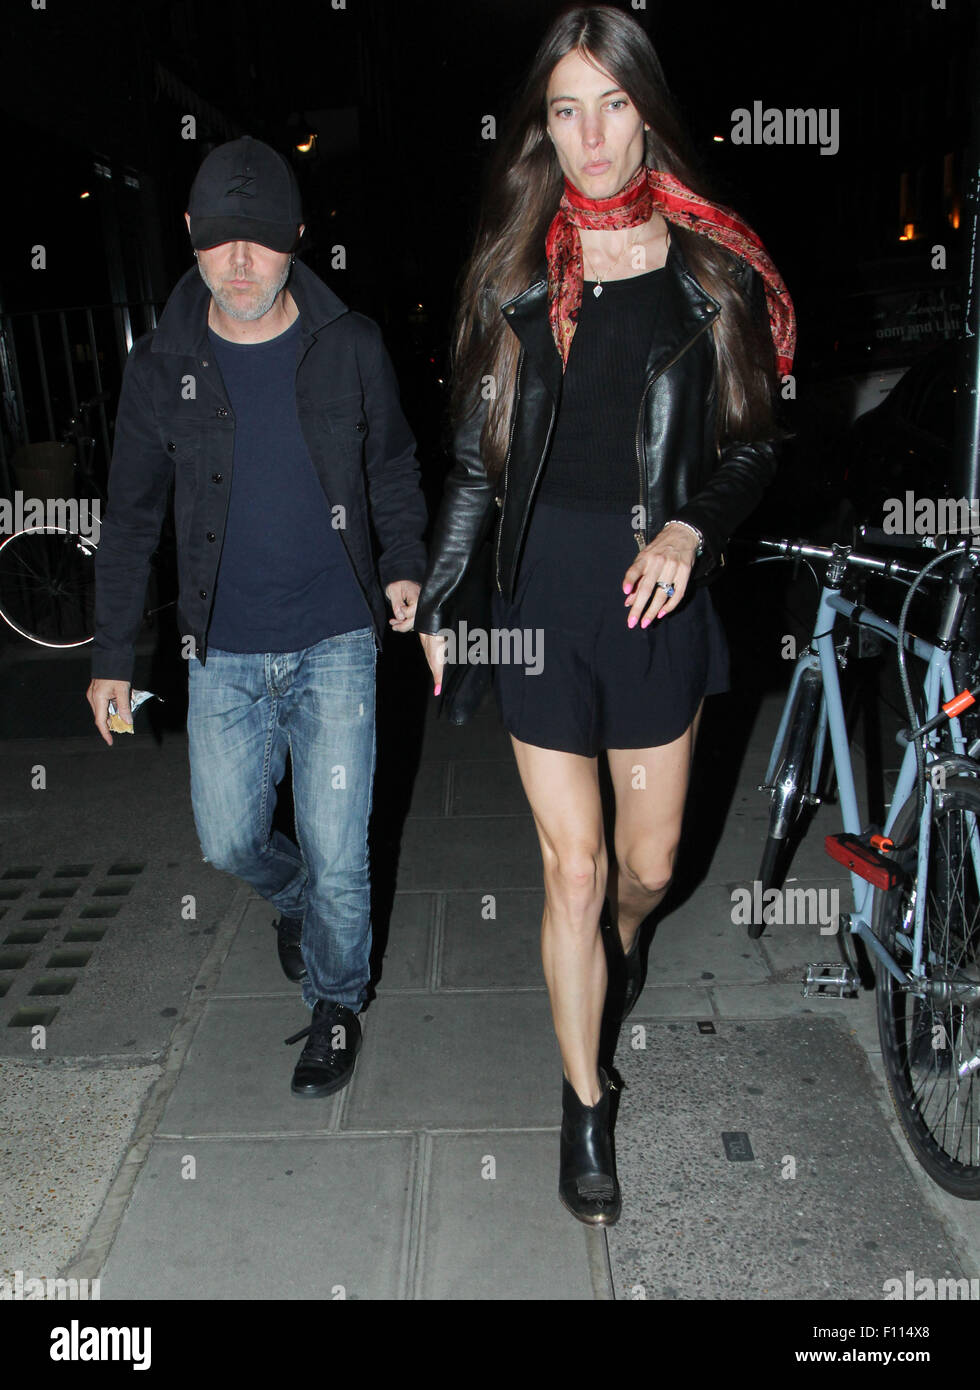 Celebrities at Chiltern Firehouse Featuring: Lars Ulrich ...